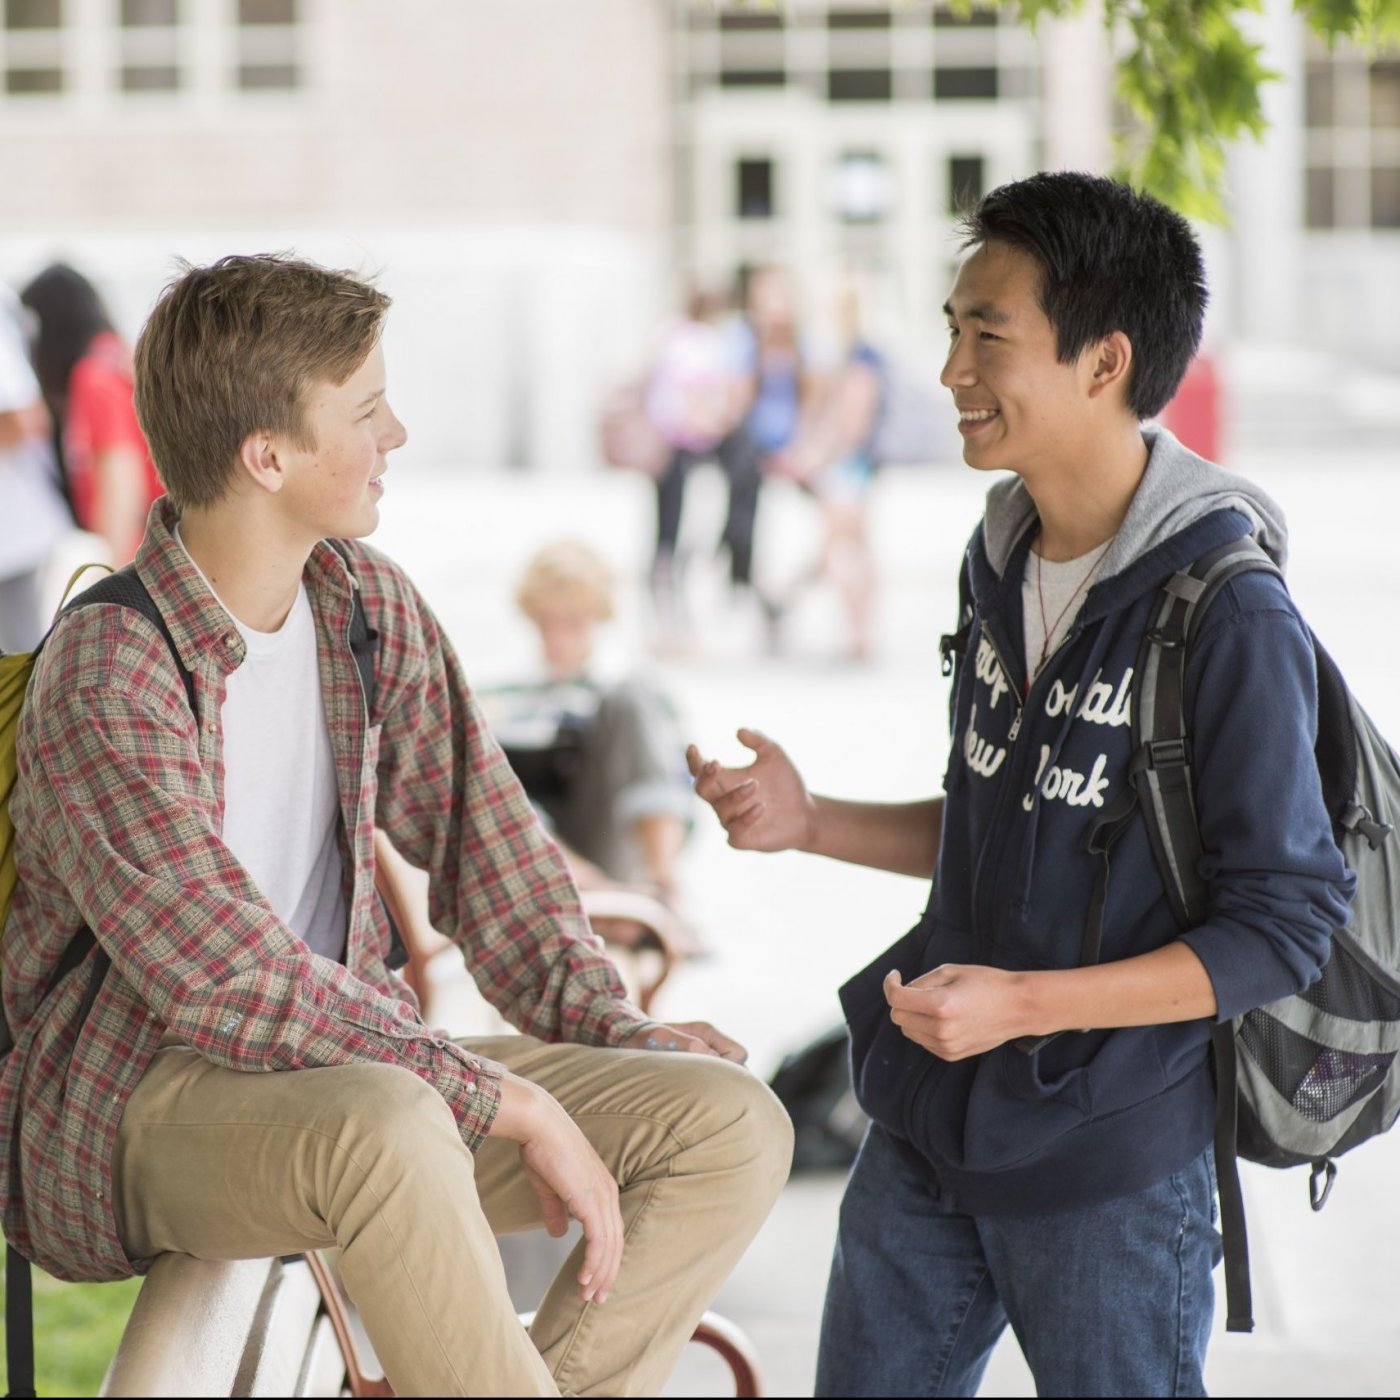 Two students chatting at a university